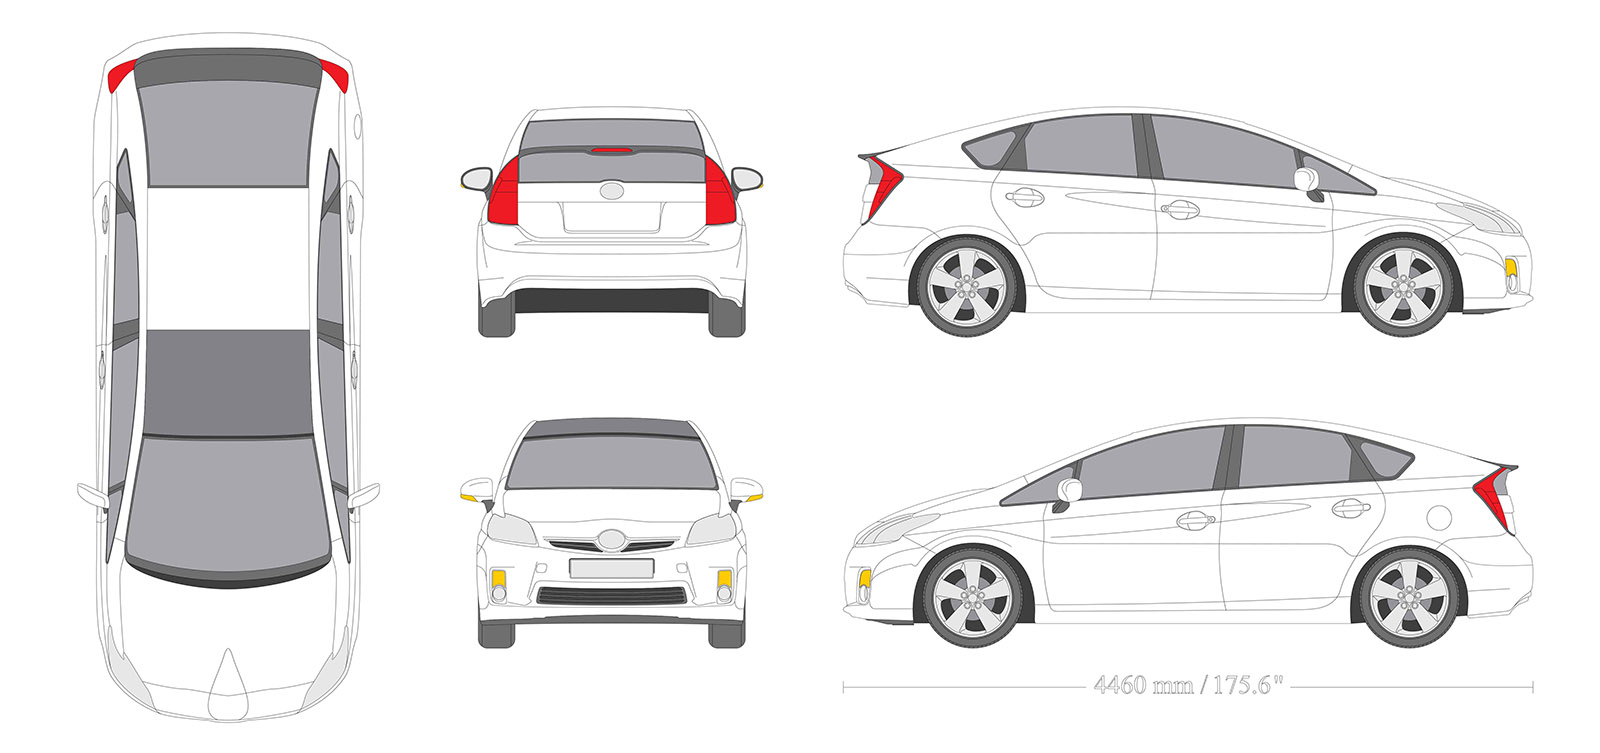 Vehicle Graphic Design layout